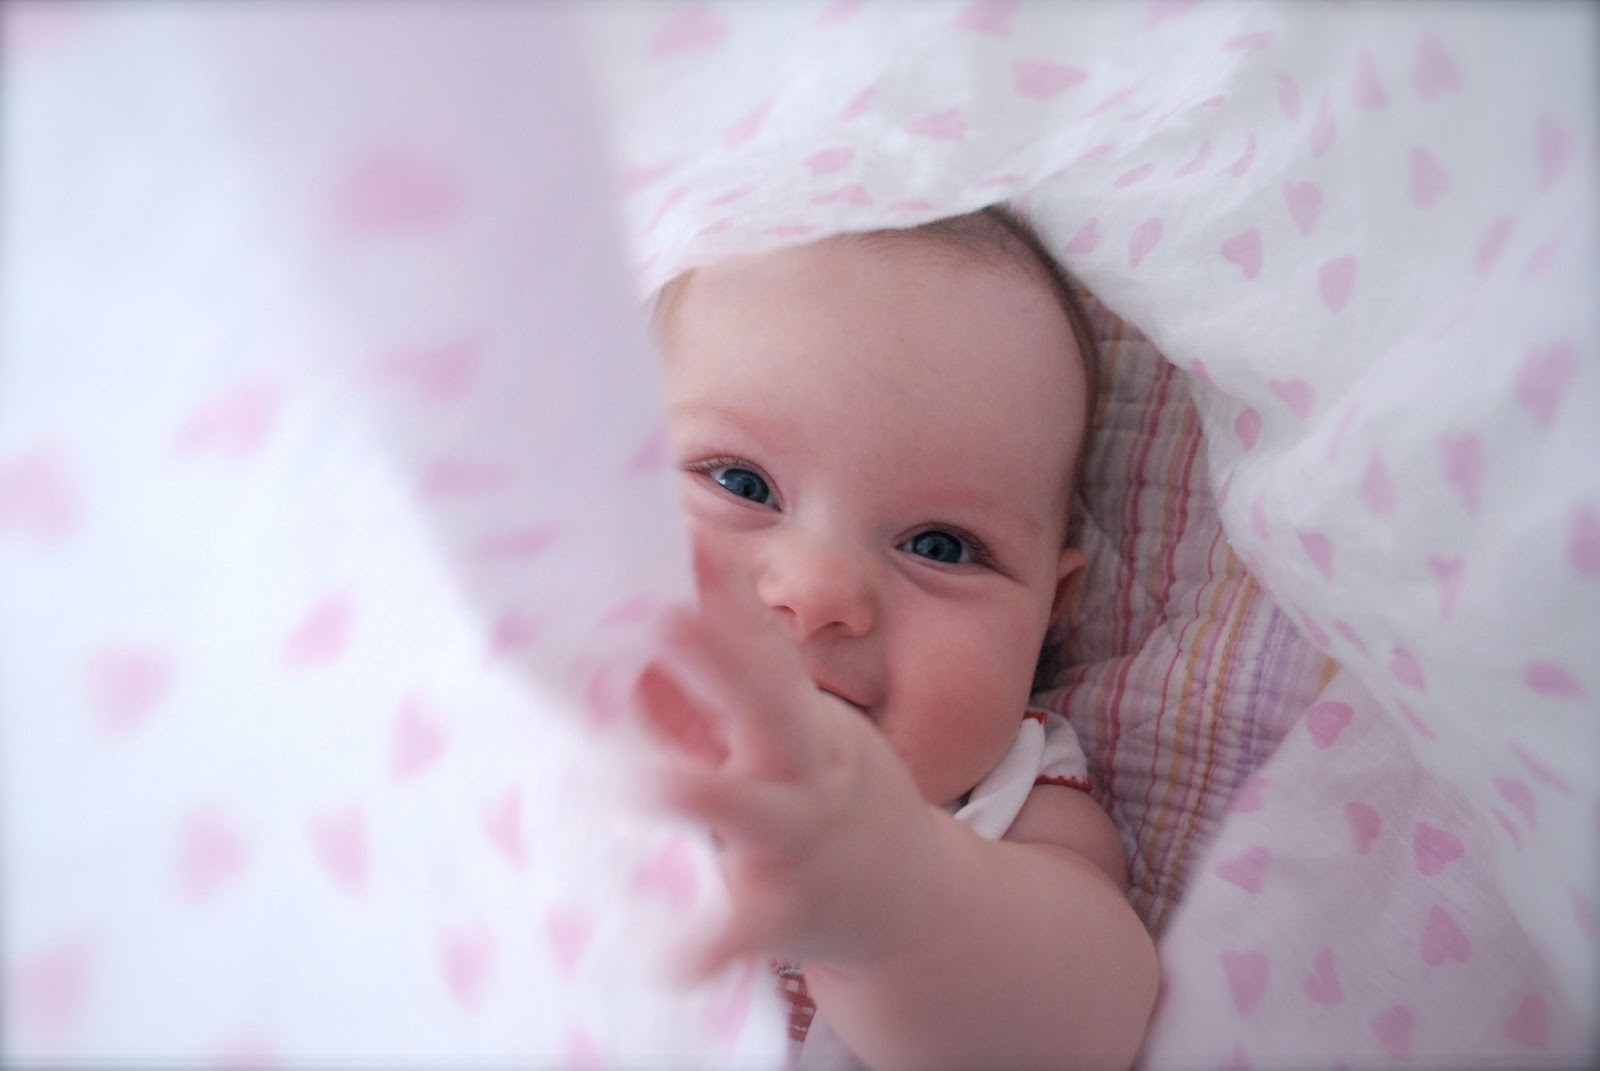 Cute Baby Girl #16 Free Wallpaper